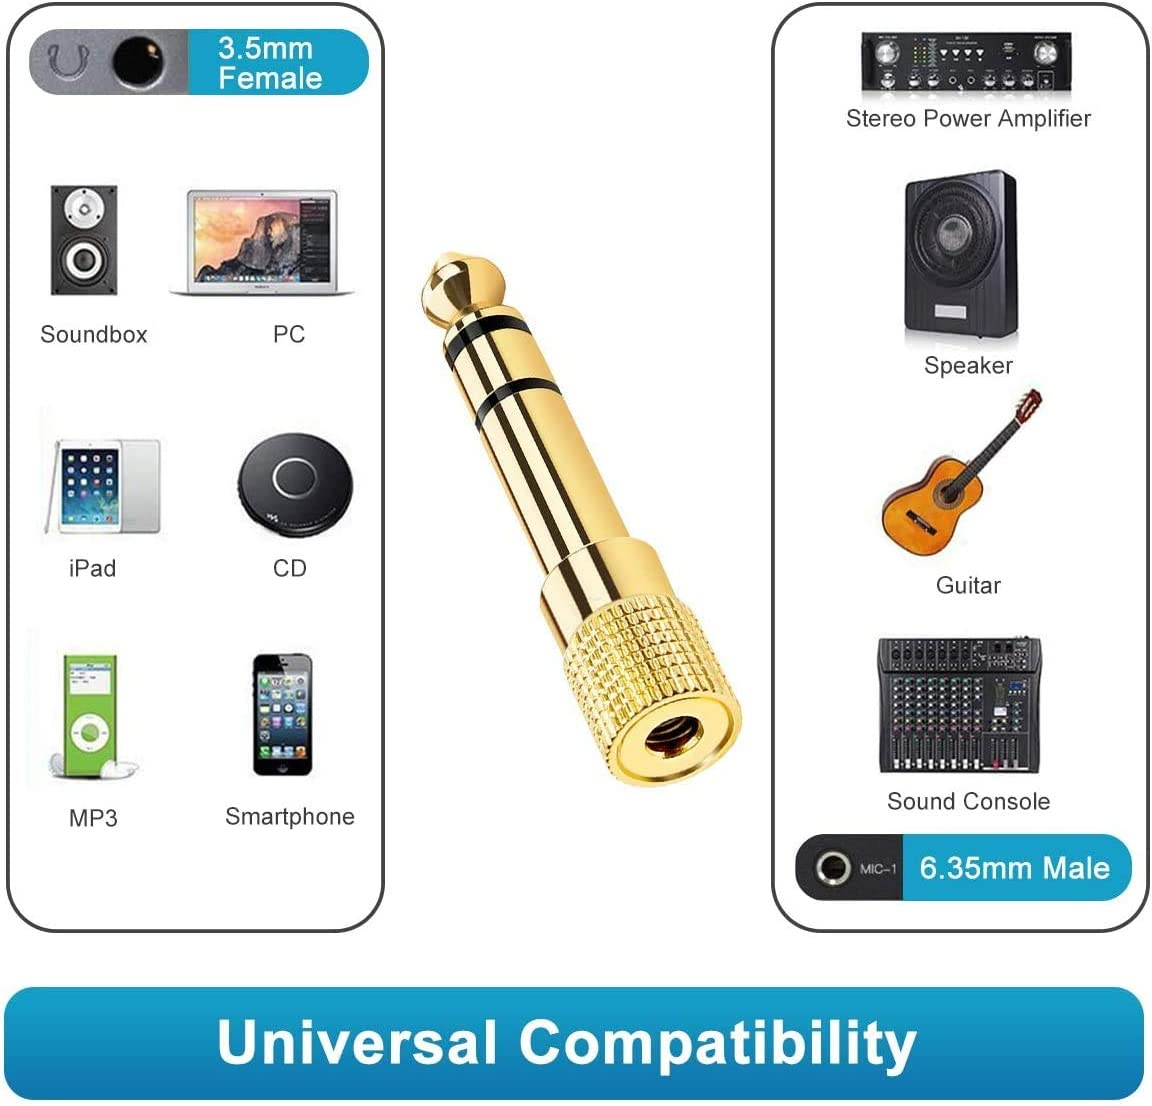 Gold-Plated 3.5mm 1//8 inch to 6.35mm 1//4 inch Female to Male Audio Plug Adaptor for Digital Piano 3.5mm to 6.35mm Stereo Aux Jack Headphone Adapter etc 1-PAKC Headphones Adapter Keyboard